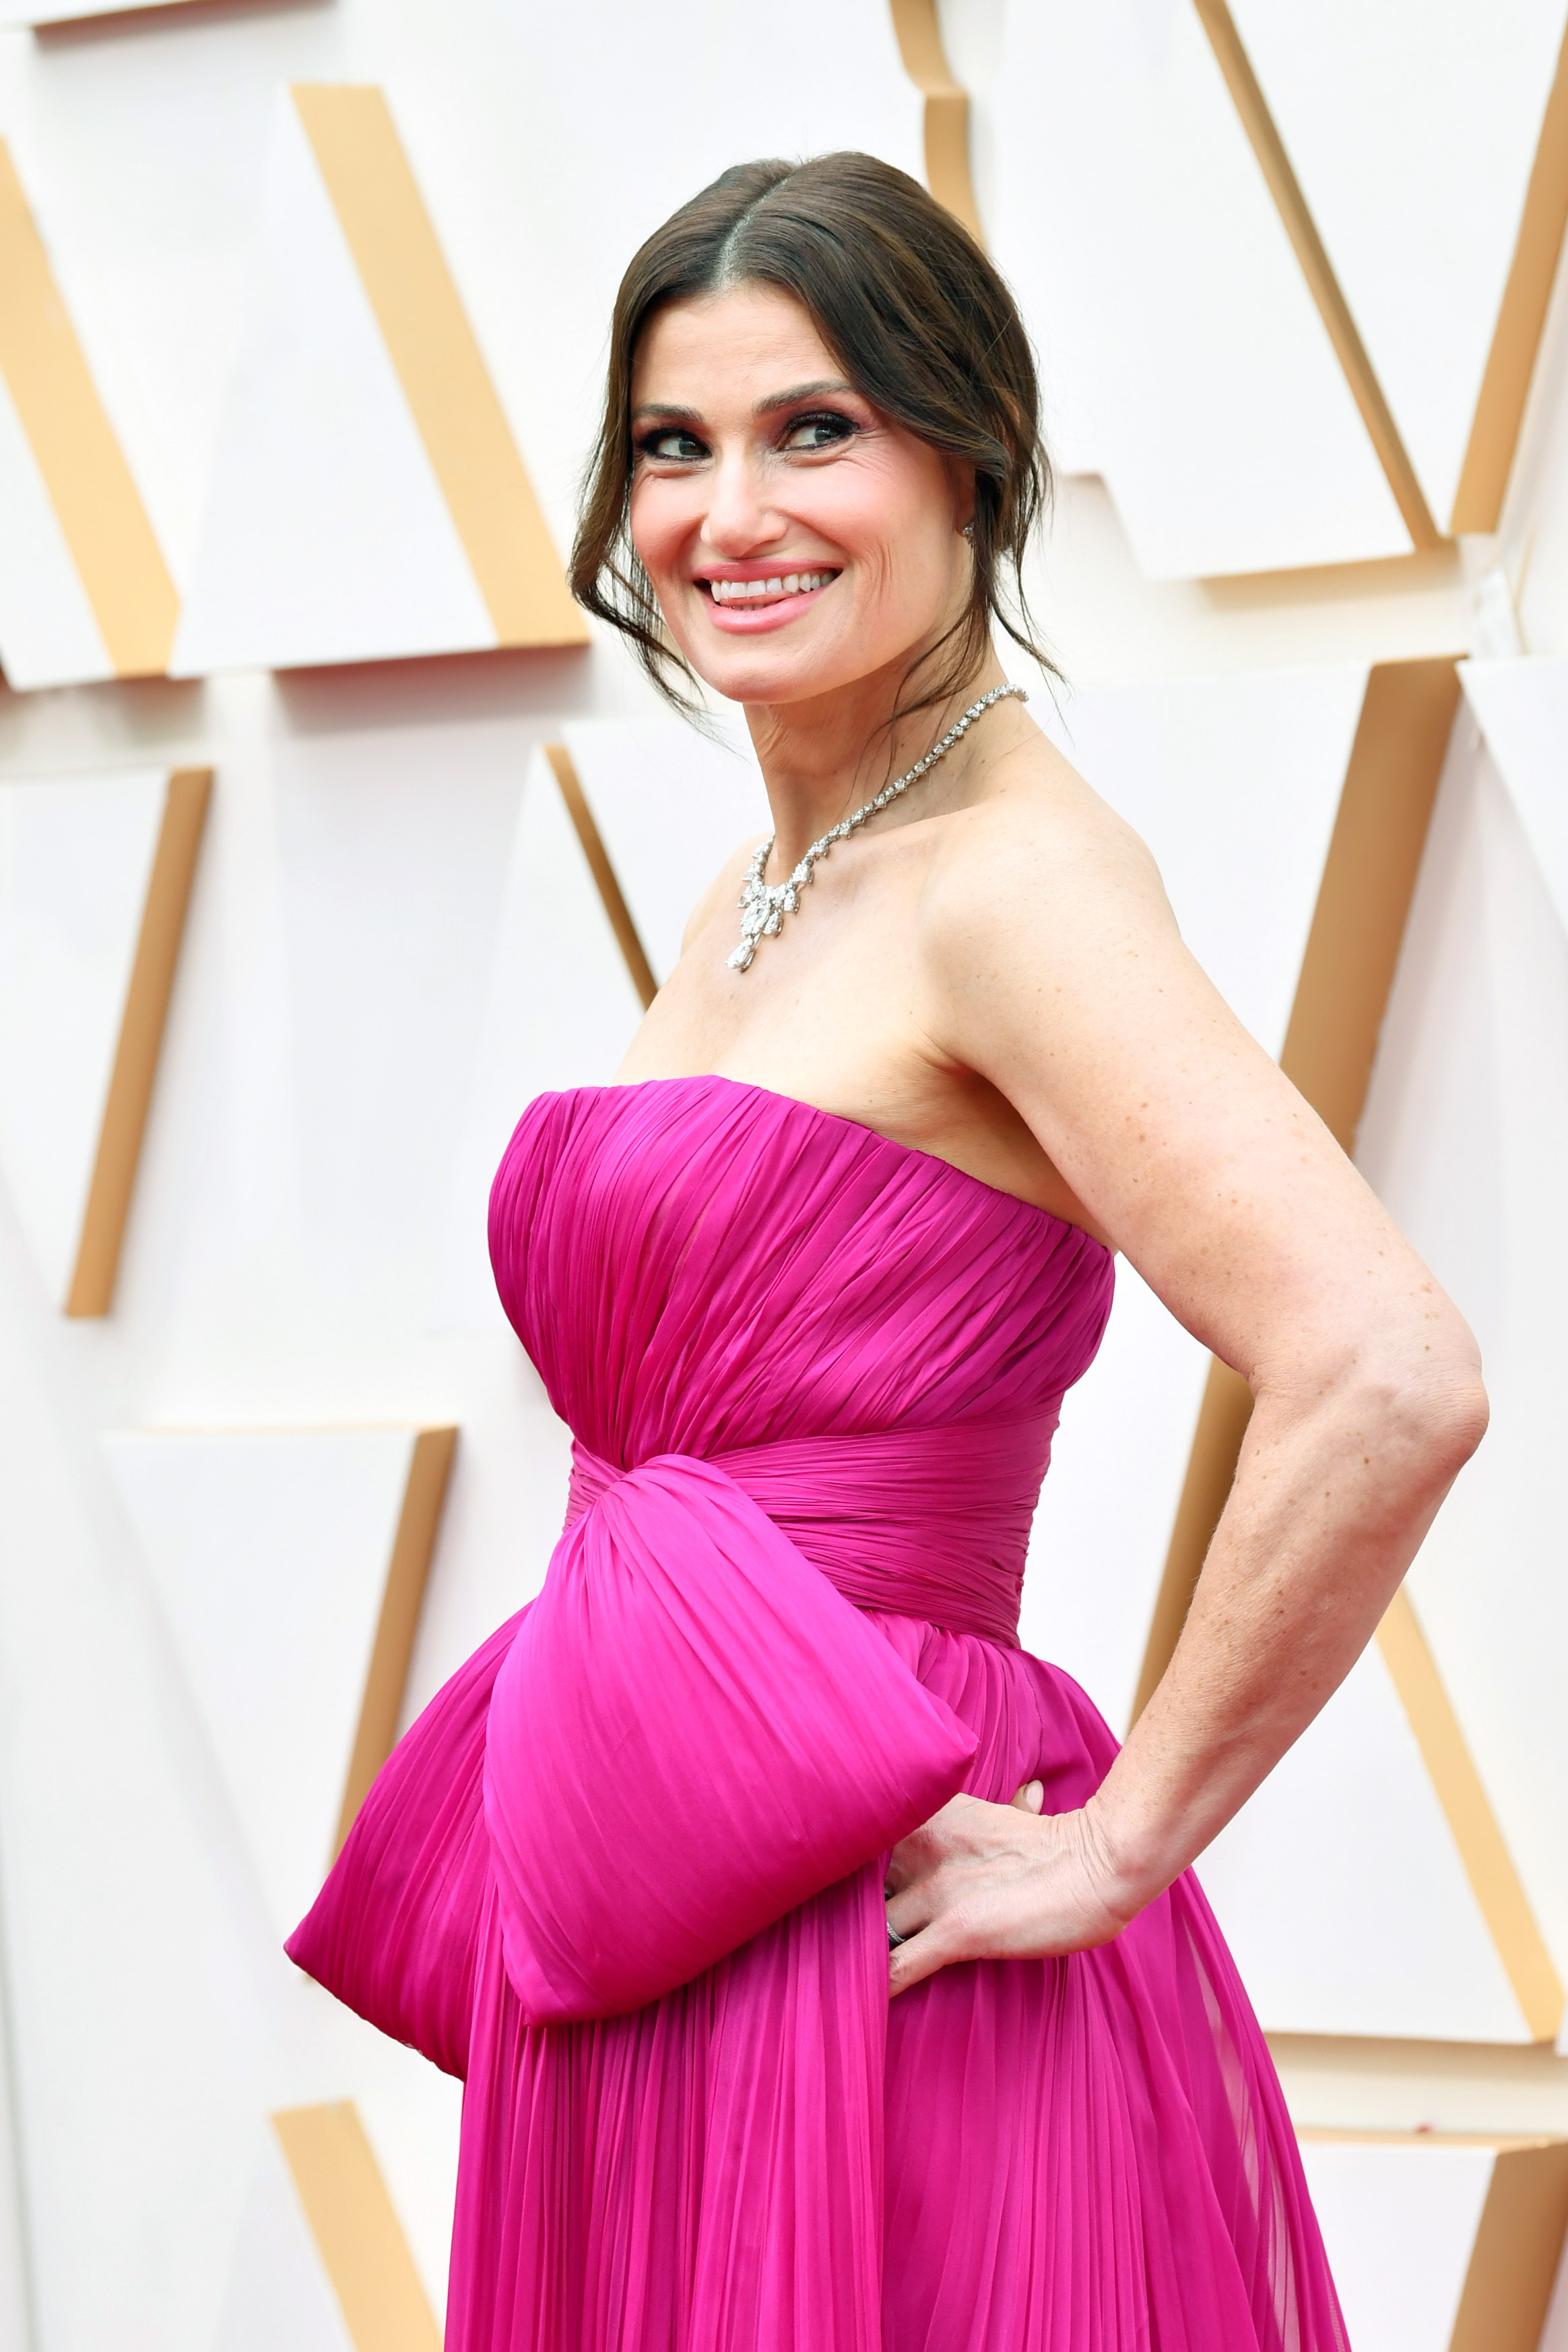 HOLLYWOOD, CALIFORNIA - FEBRUARY 09: Idina Menzel attends the 92nd Annual Academy Awards at Hollywood and Highland on February 09, 2020 in Hollywood, California. (Photo by Amy Sussman/Getty Images)